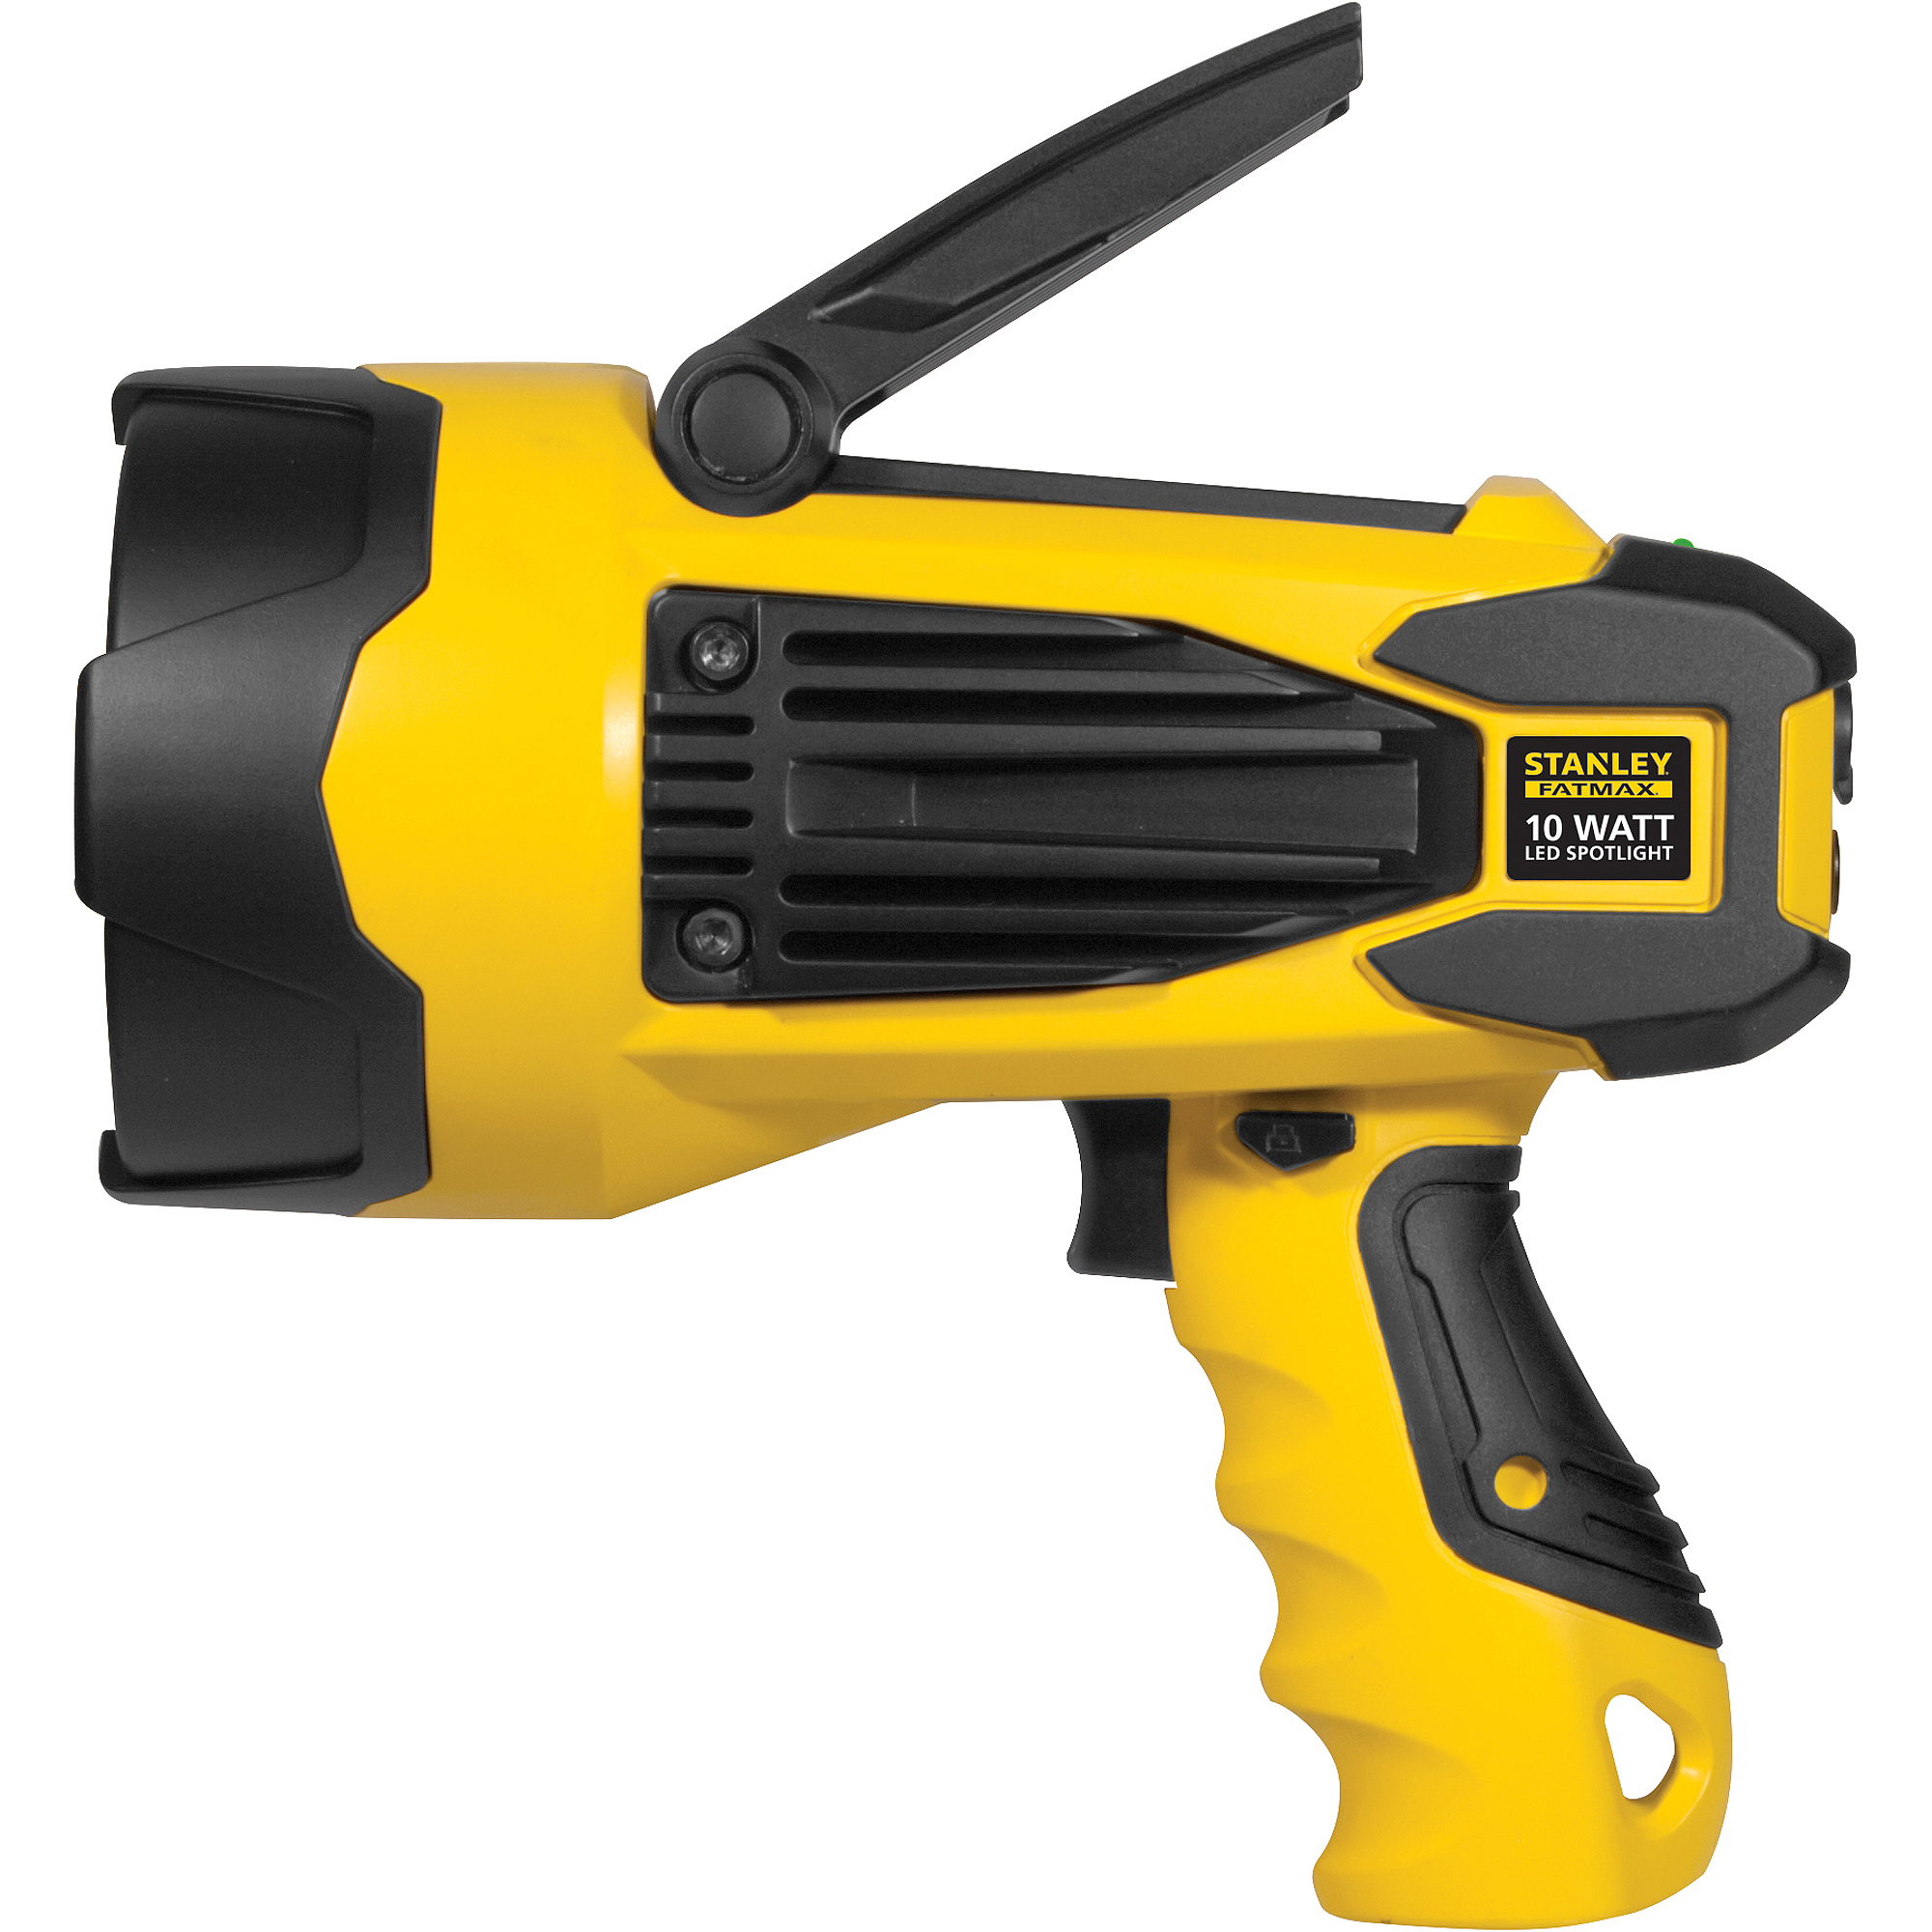 Stanley FatMax 10W LED Lithium-Ion Rechargeable Spotlight